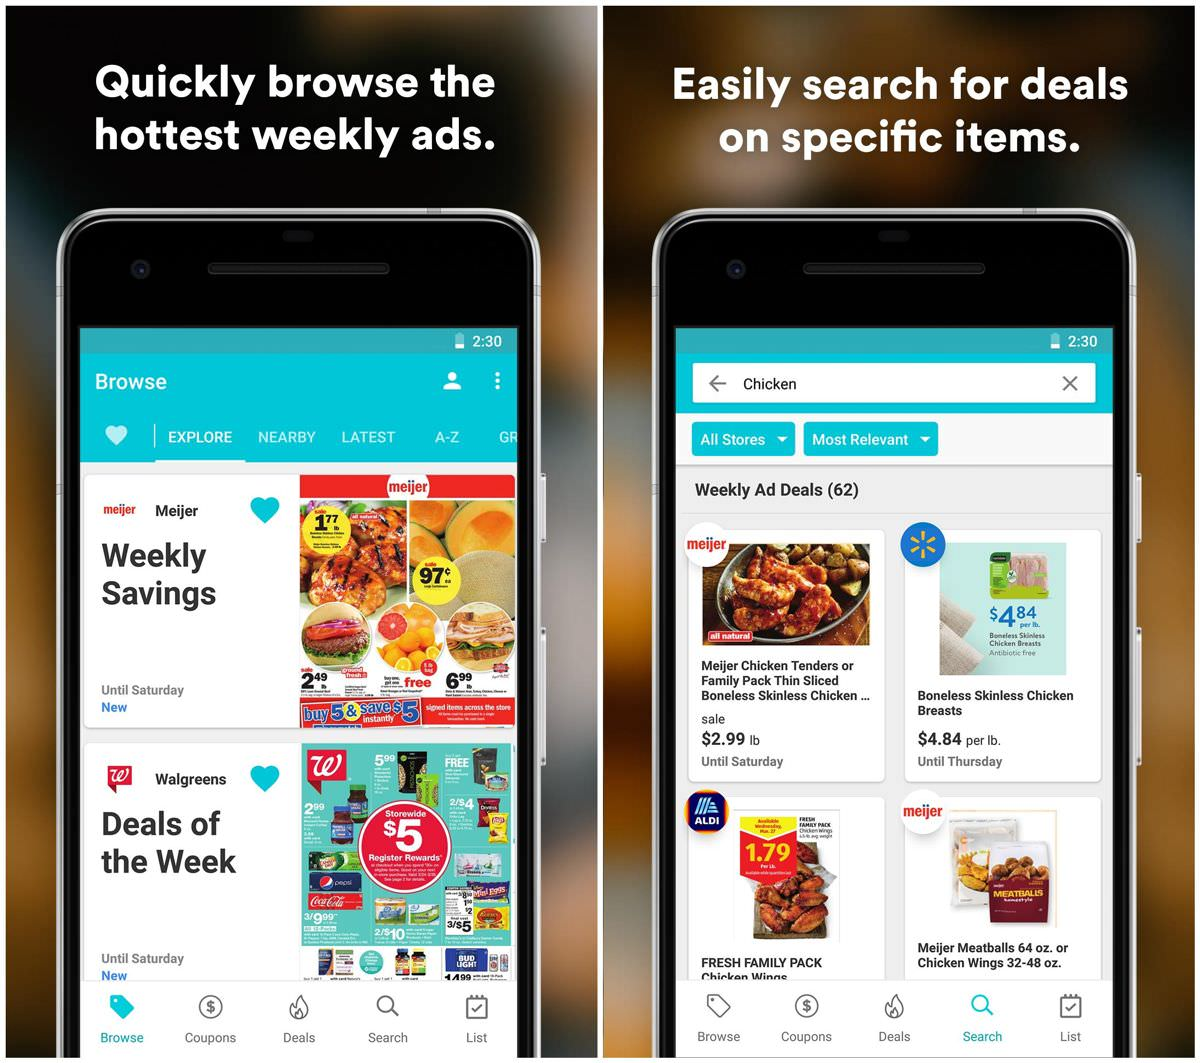 Flipp shows weekly flyers, deals, and coupons